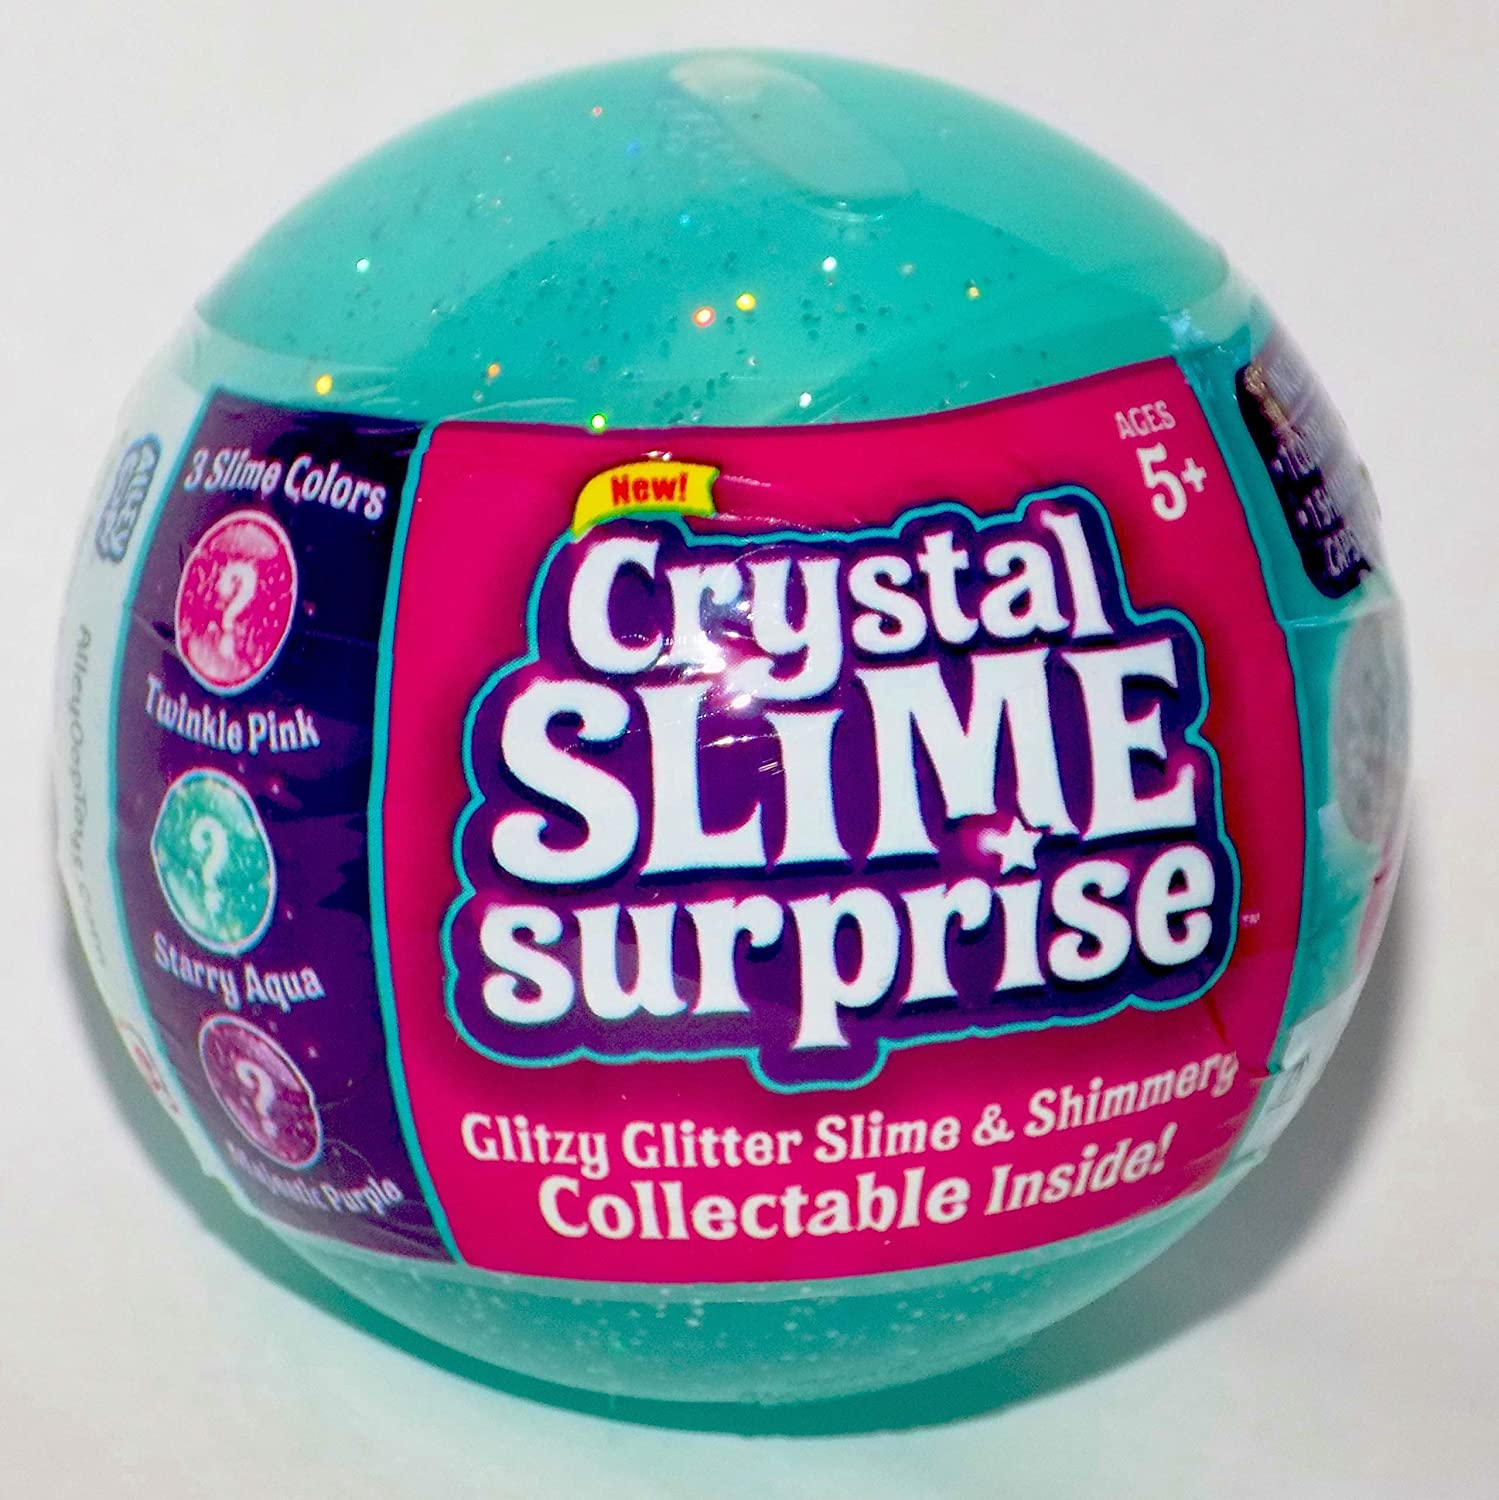 Starry Aqua Crystal Slime Surprise Glitter Slime /& Collectable Inside Alley Oop